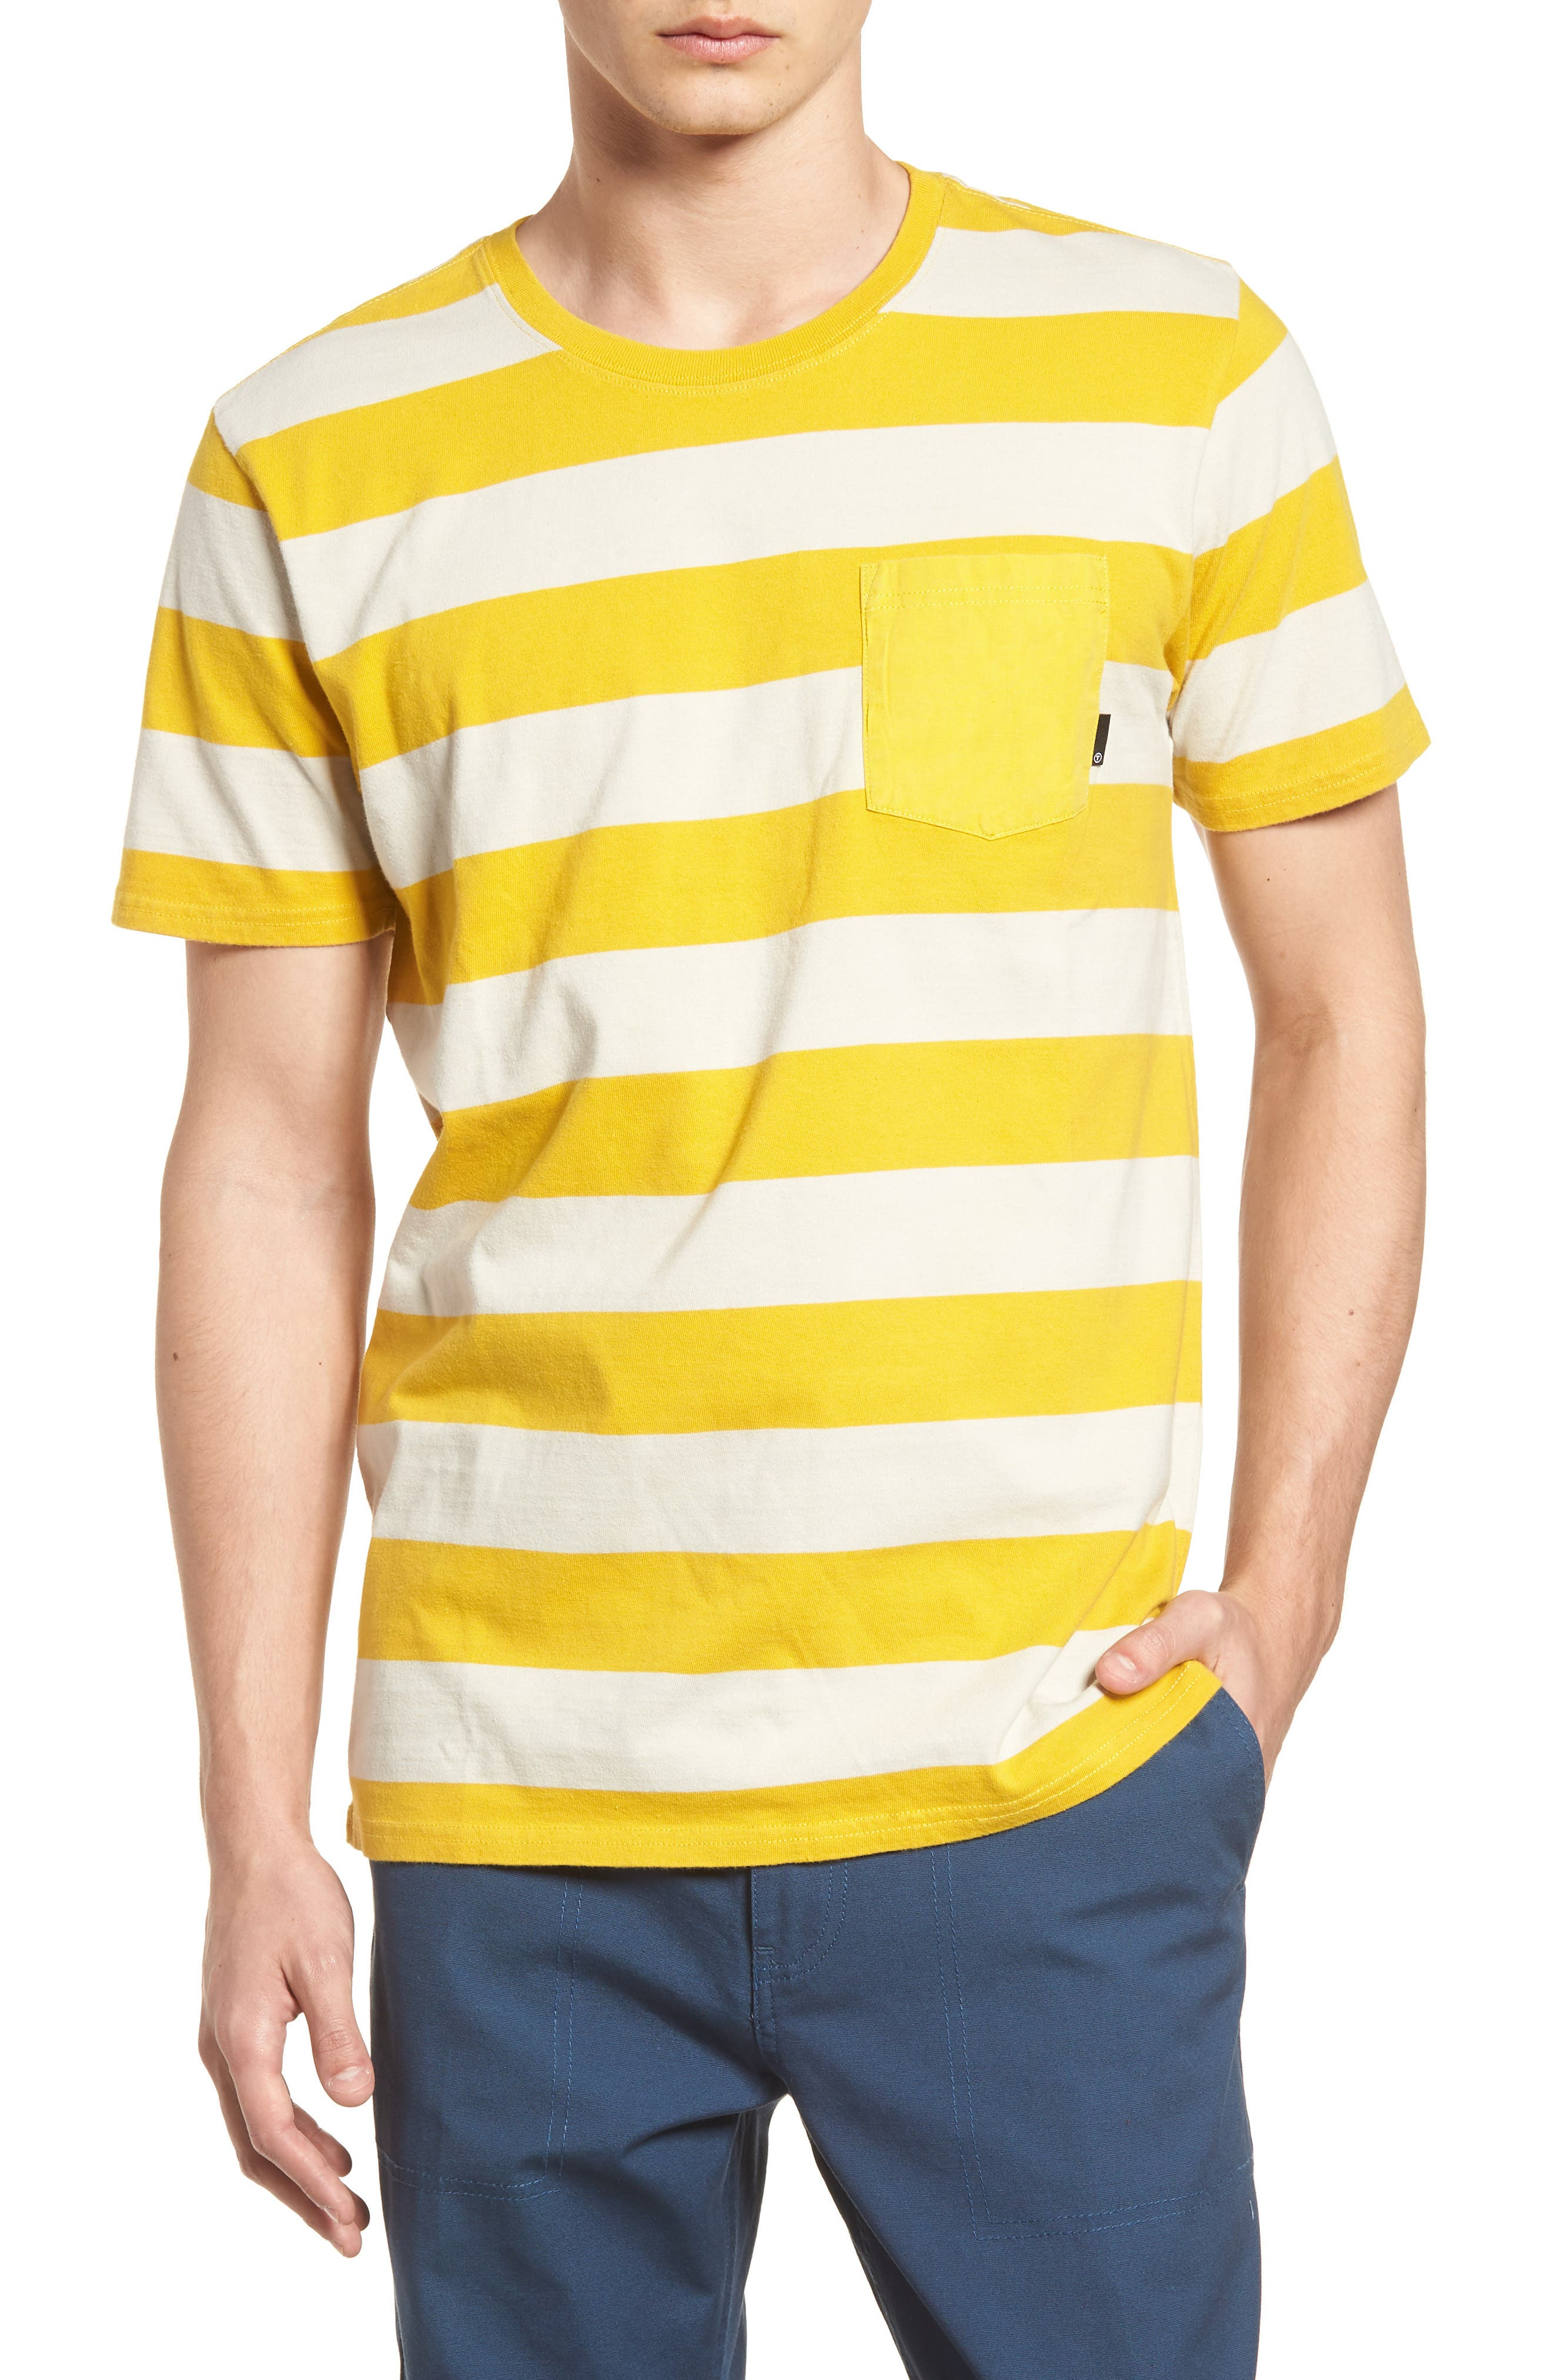 Broadcast Pocket T-Shirt,                         Main,                         color, Natural/Mustard Yellow Stripe